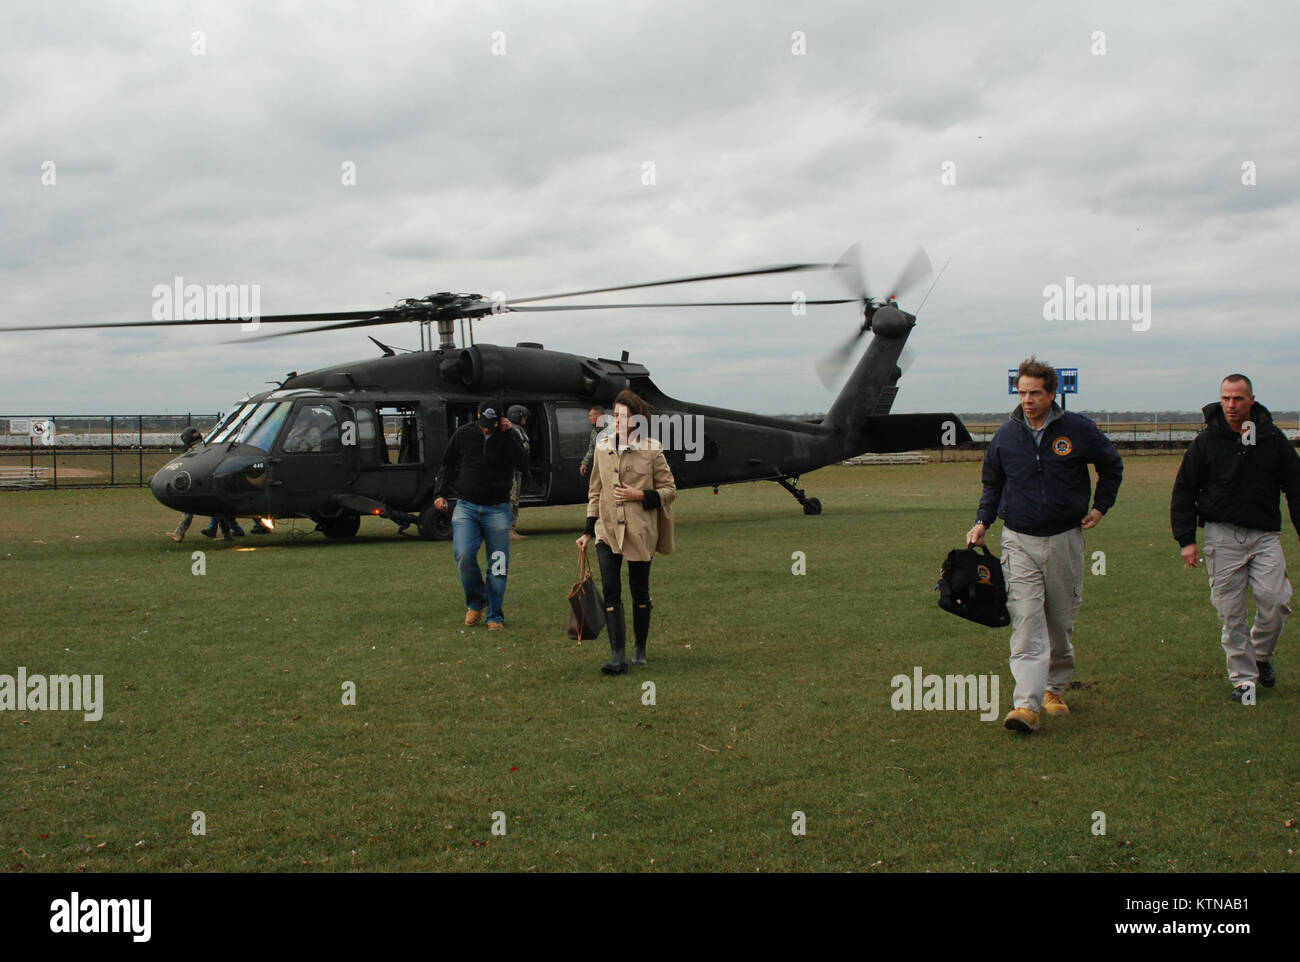 LONG BEACH, N.Y. – New York State Governor Andrew Cuomo arrives on a New York National Guard UH-60 Blackhawk helicopter - Stock Image